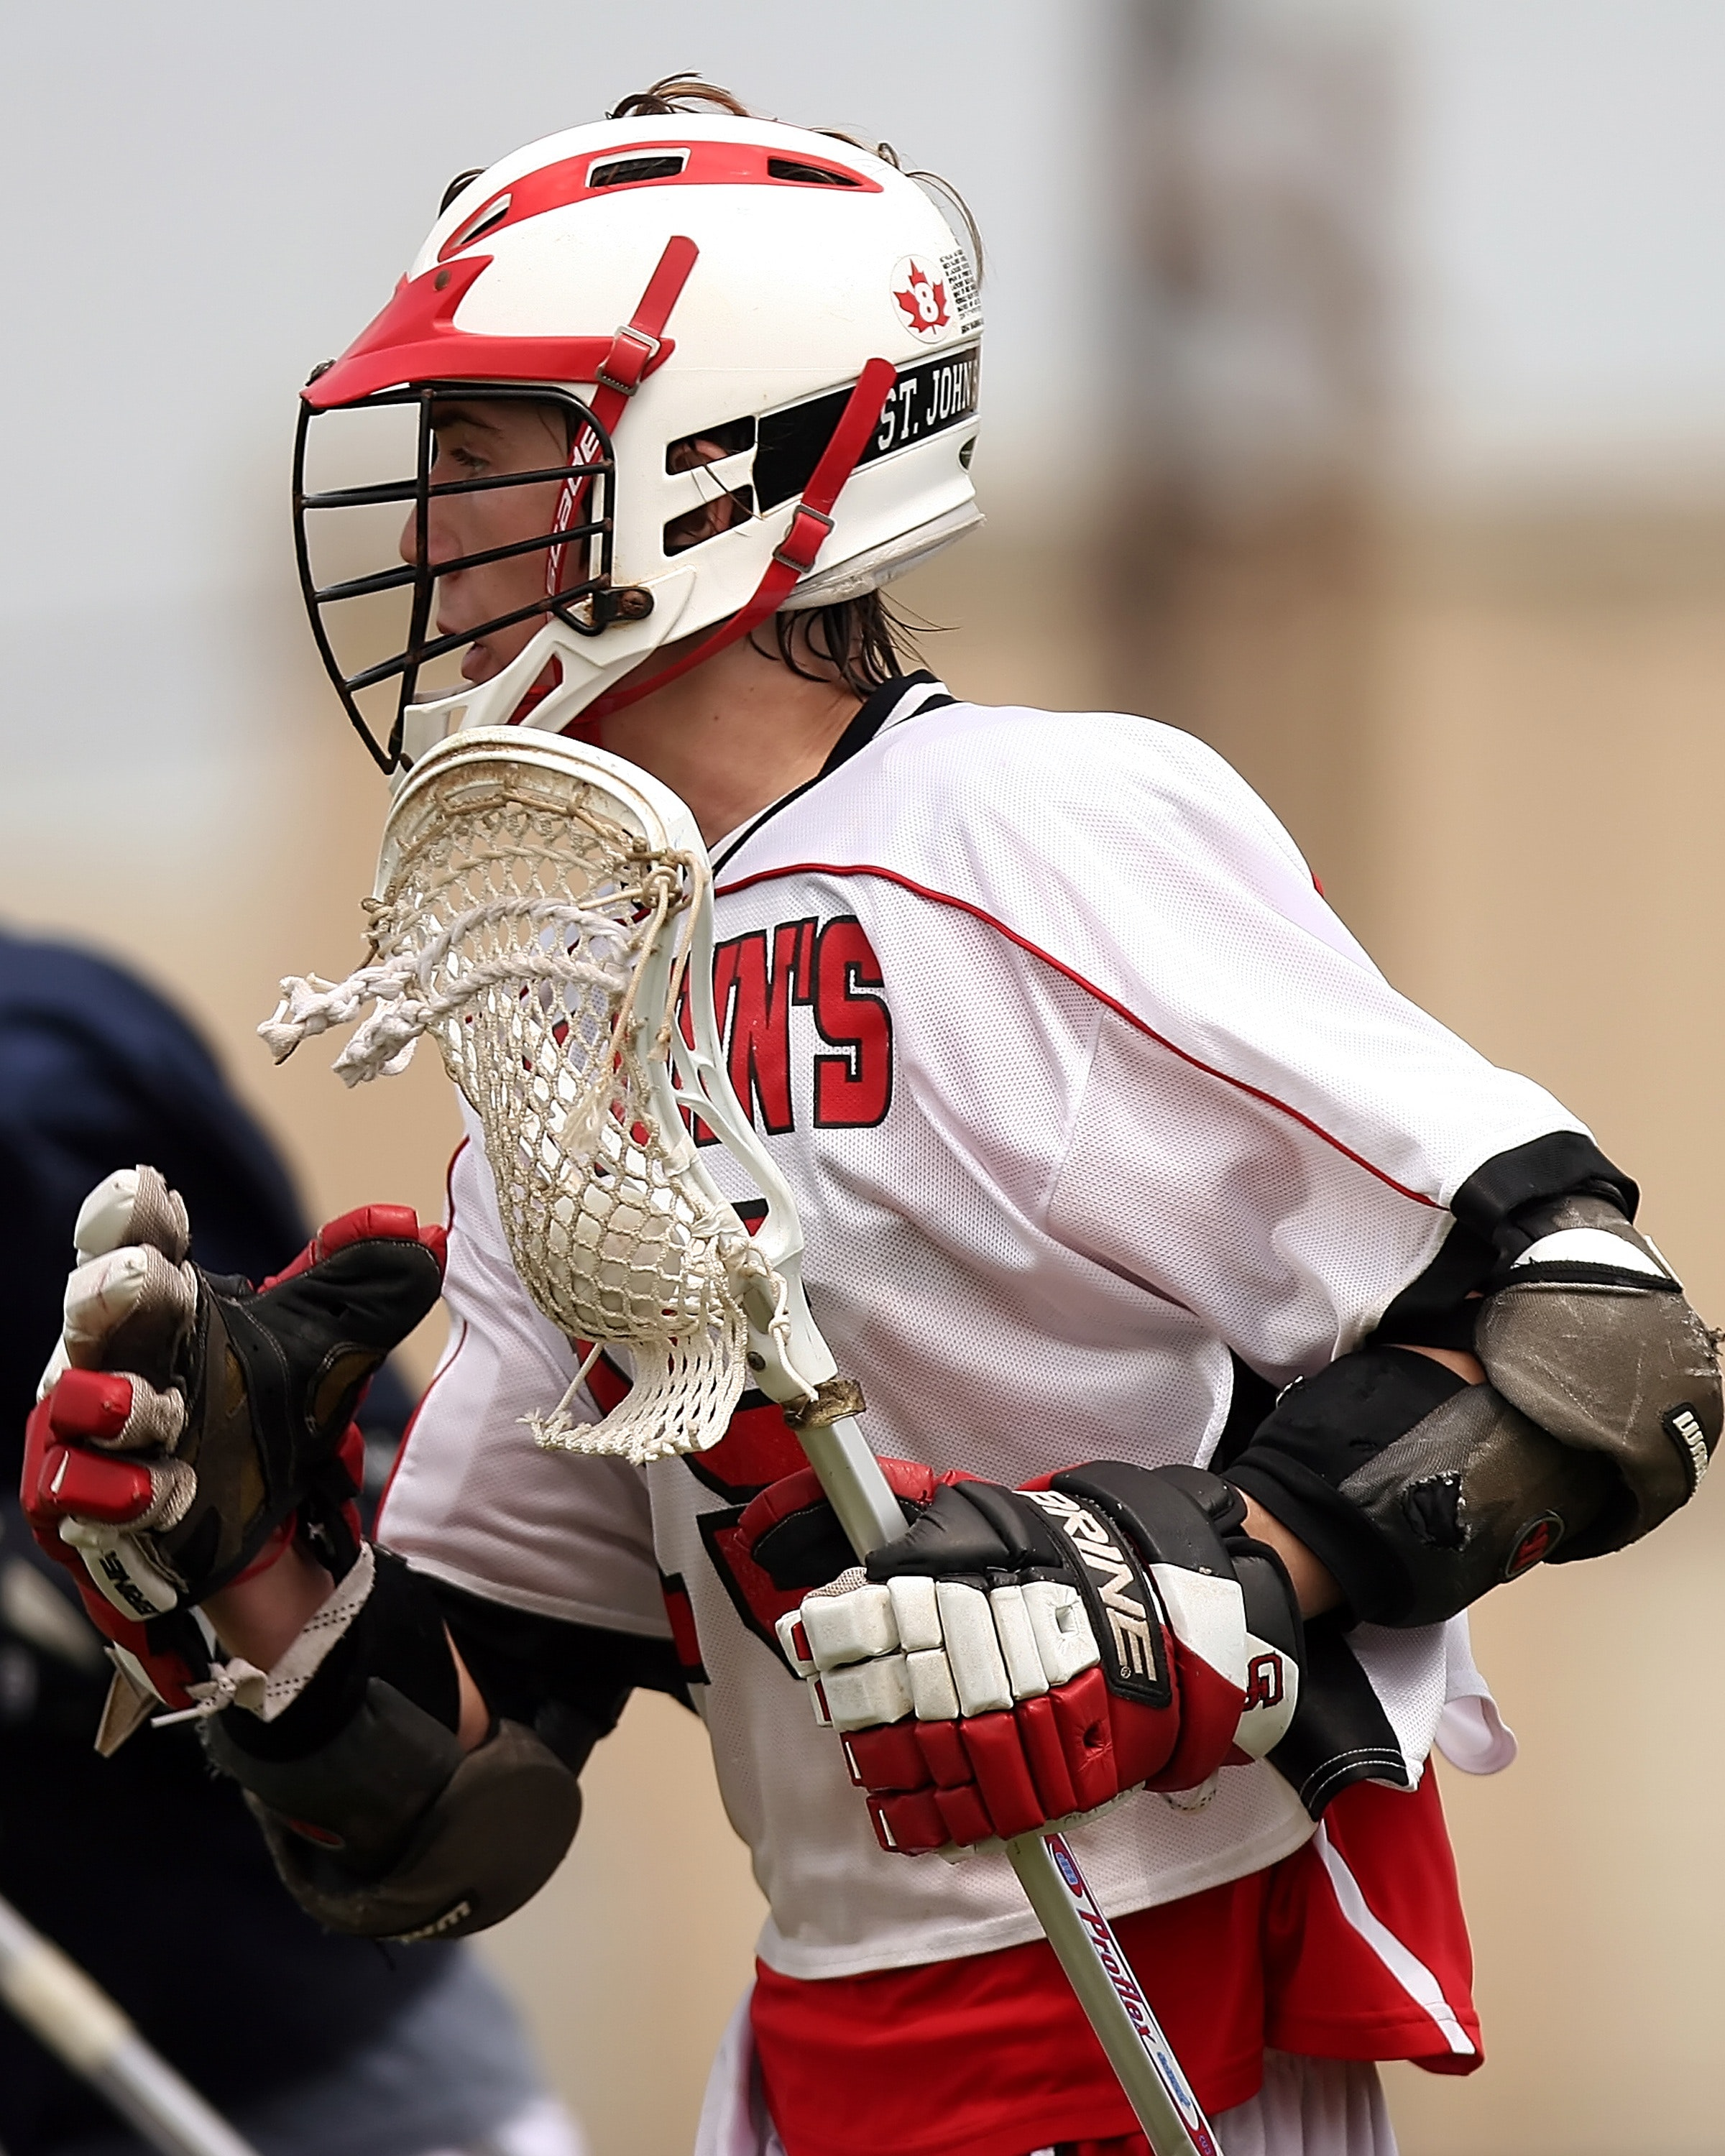 Man wearing white and red lacrosse uniform photo